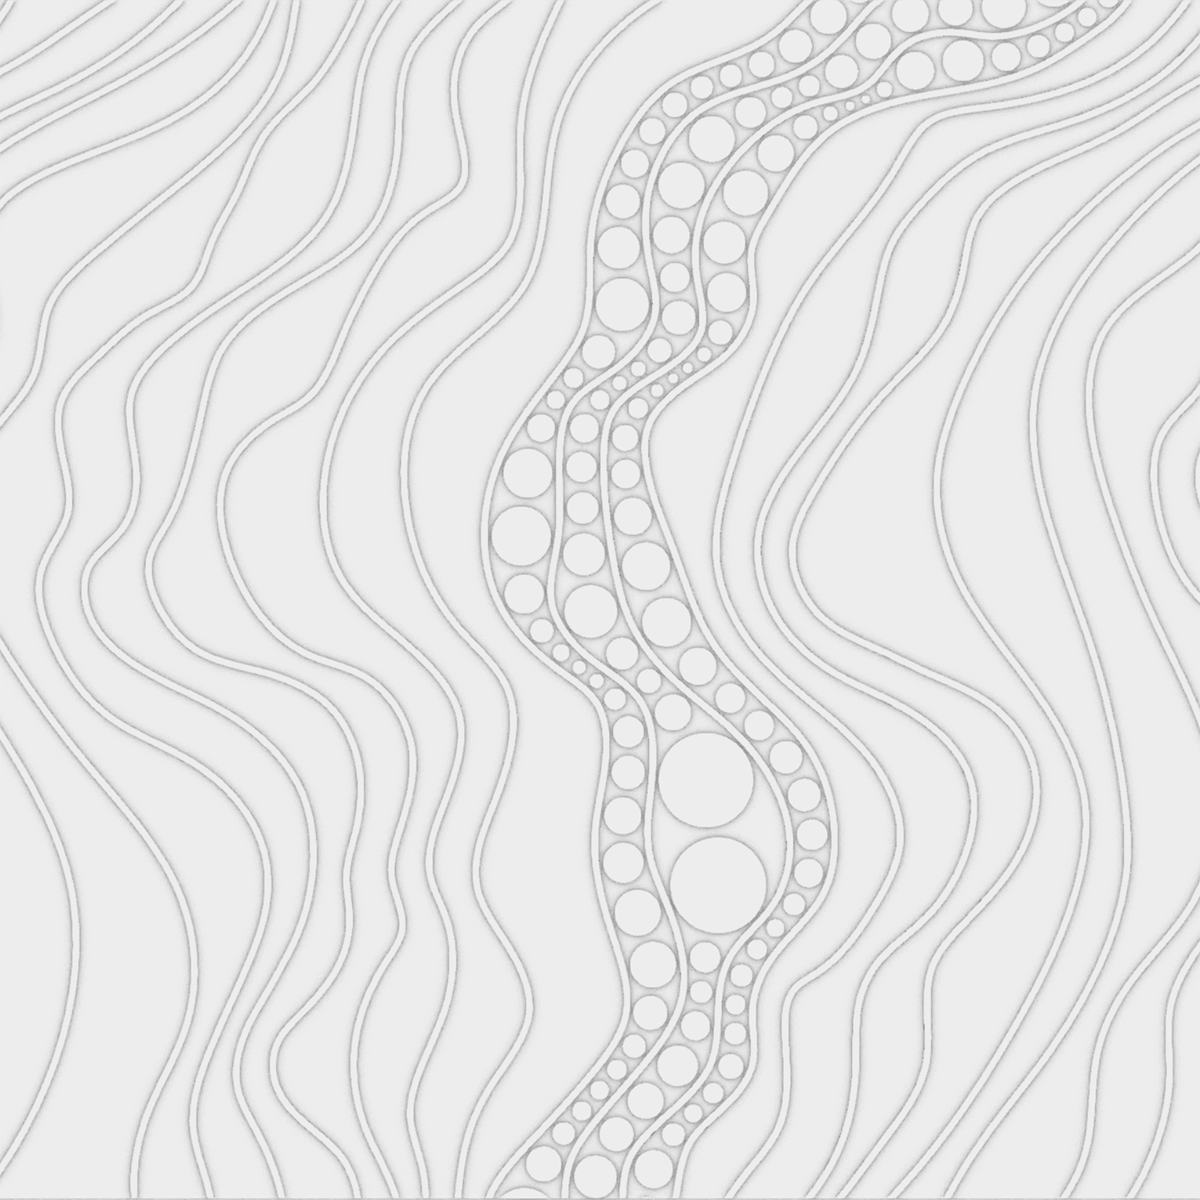 corian textured surfaces mitch cass nature collection australis line drawing